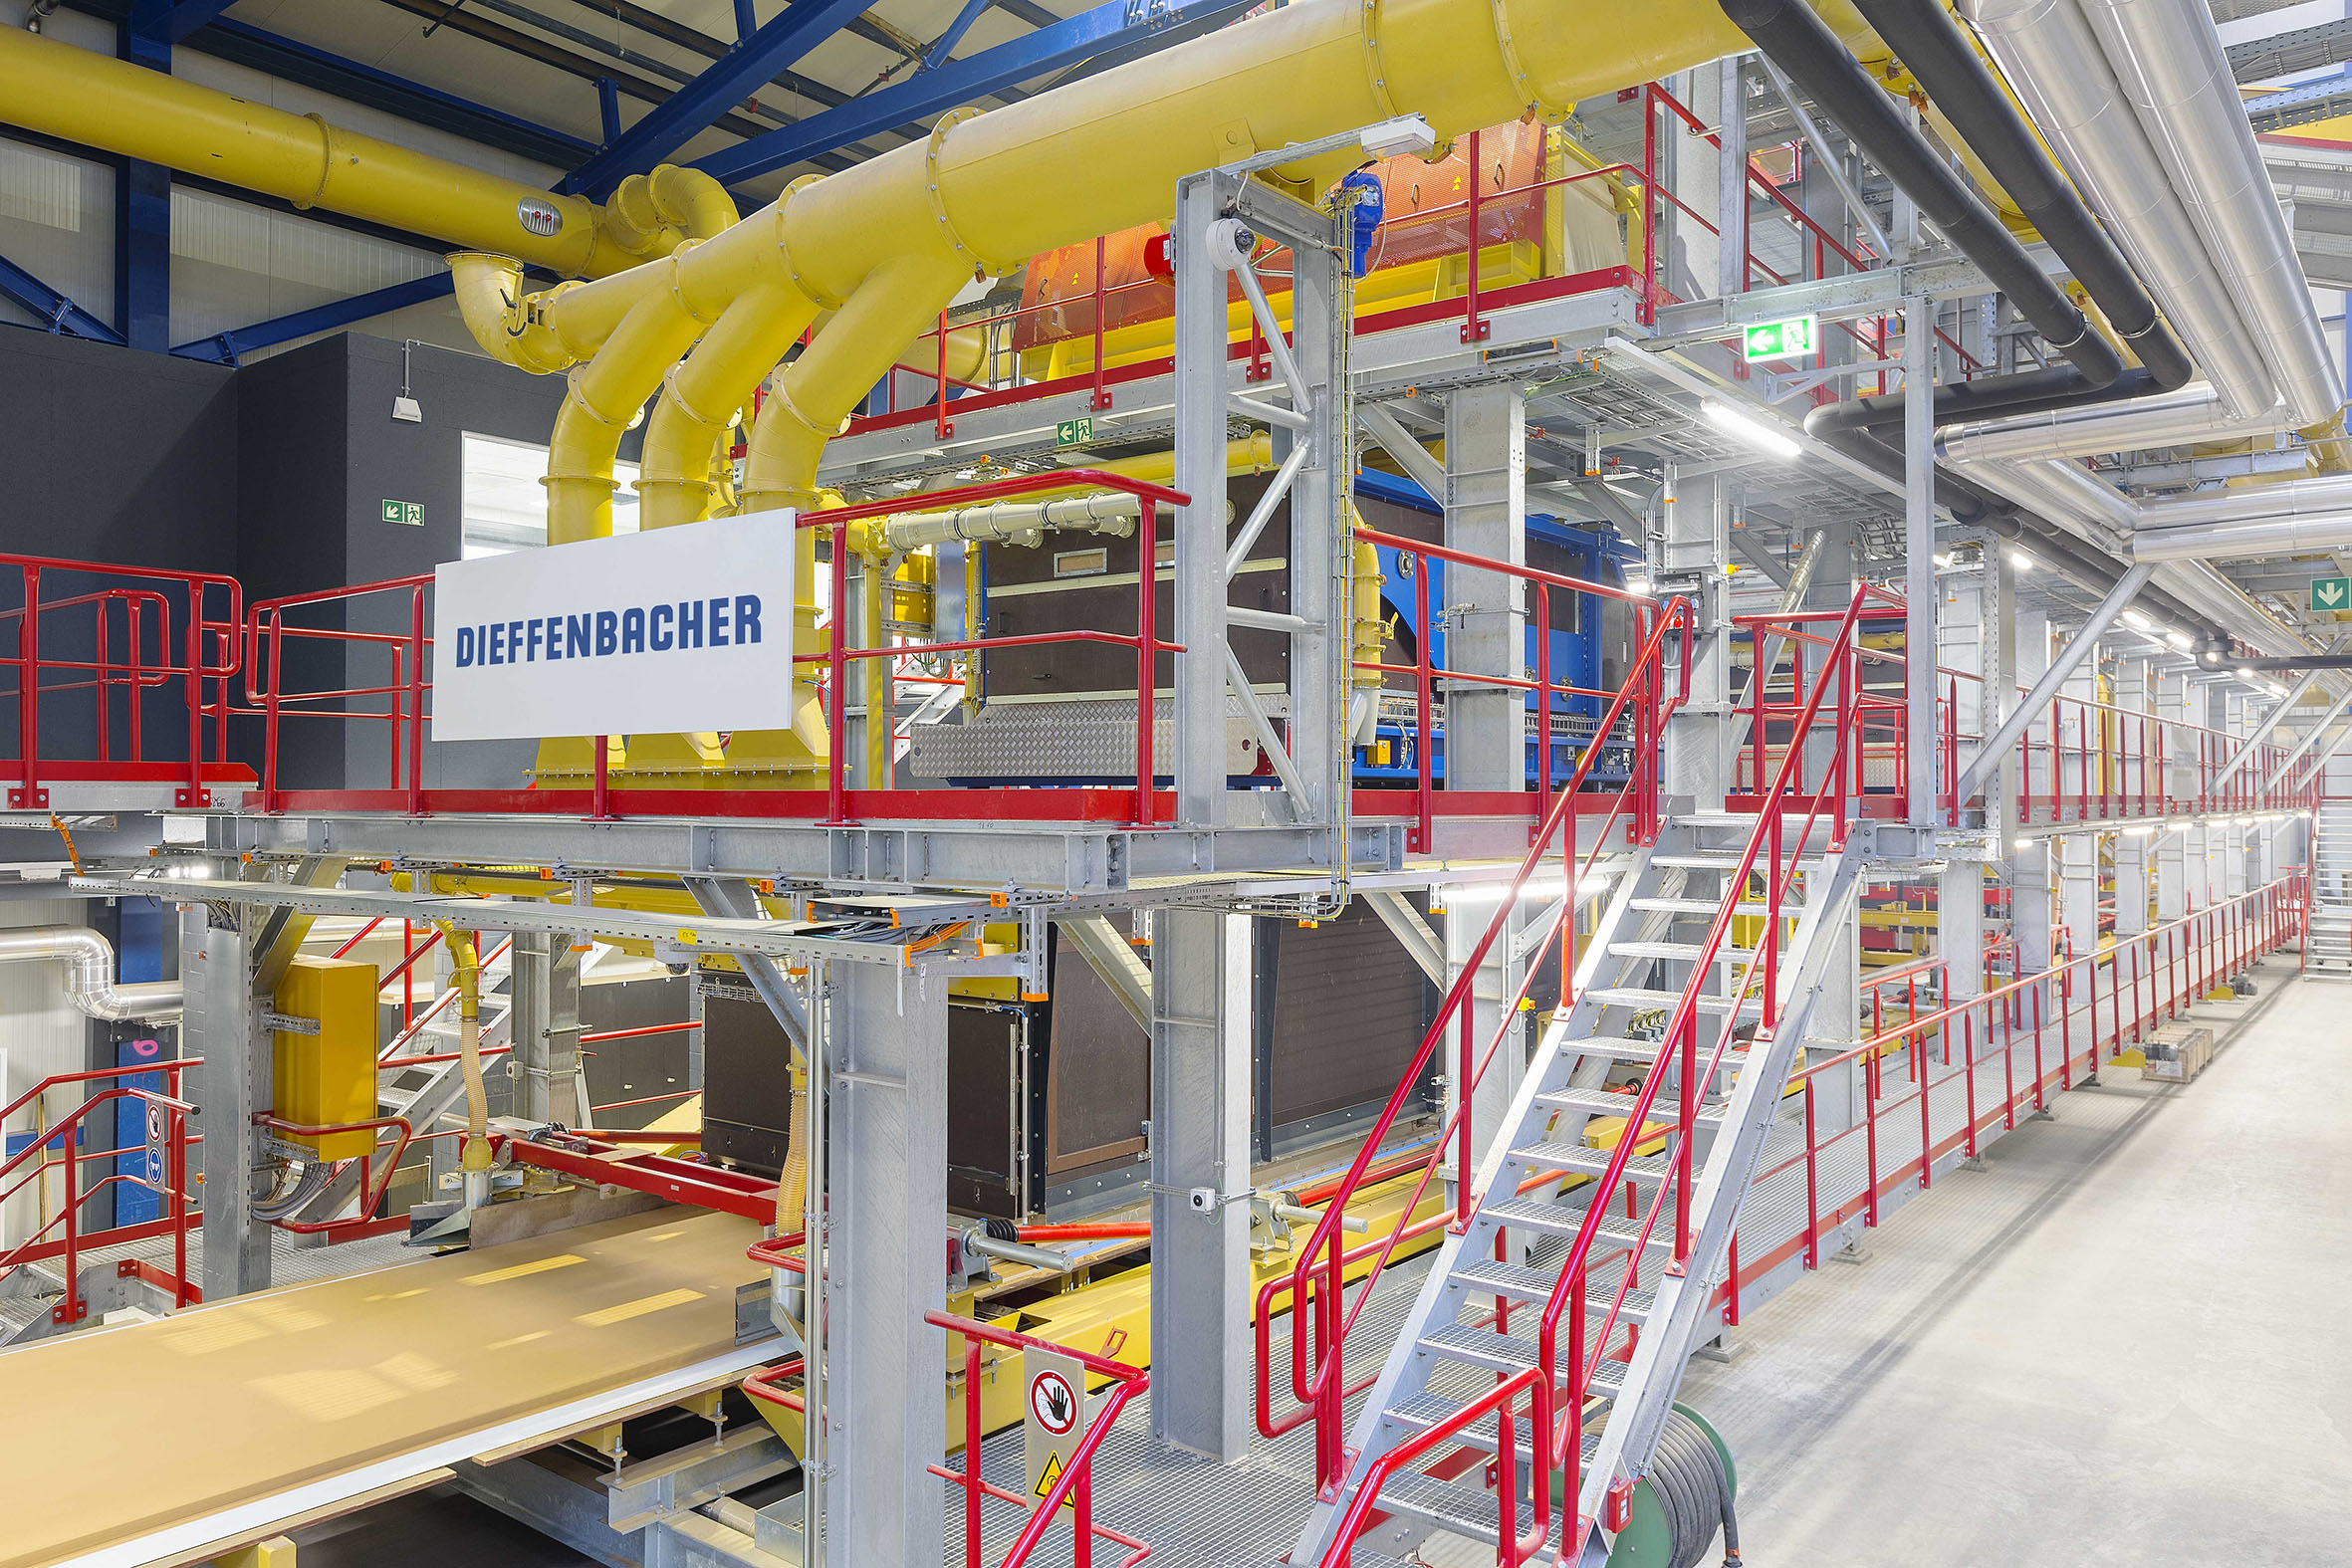 Modernizations for greater efficiency DIEFFENBACHER customers make their plants fit for the future